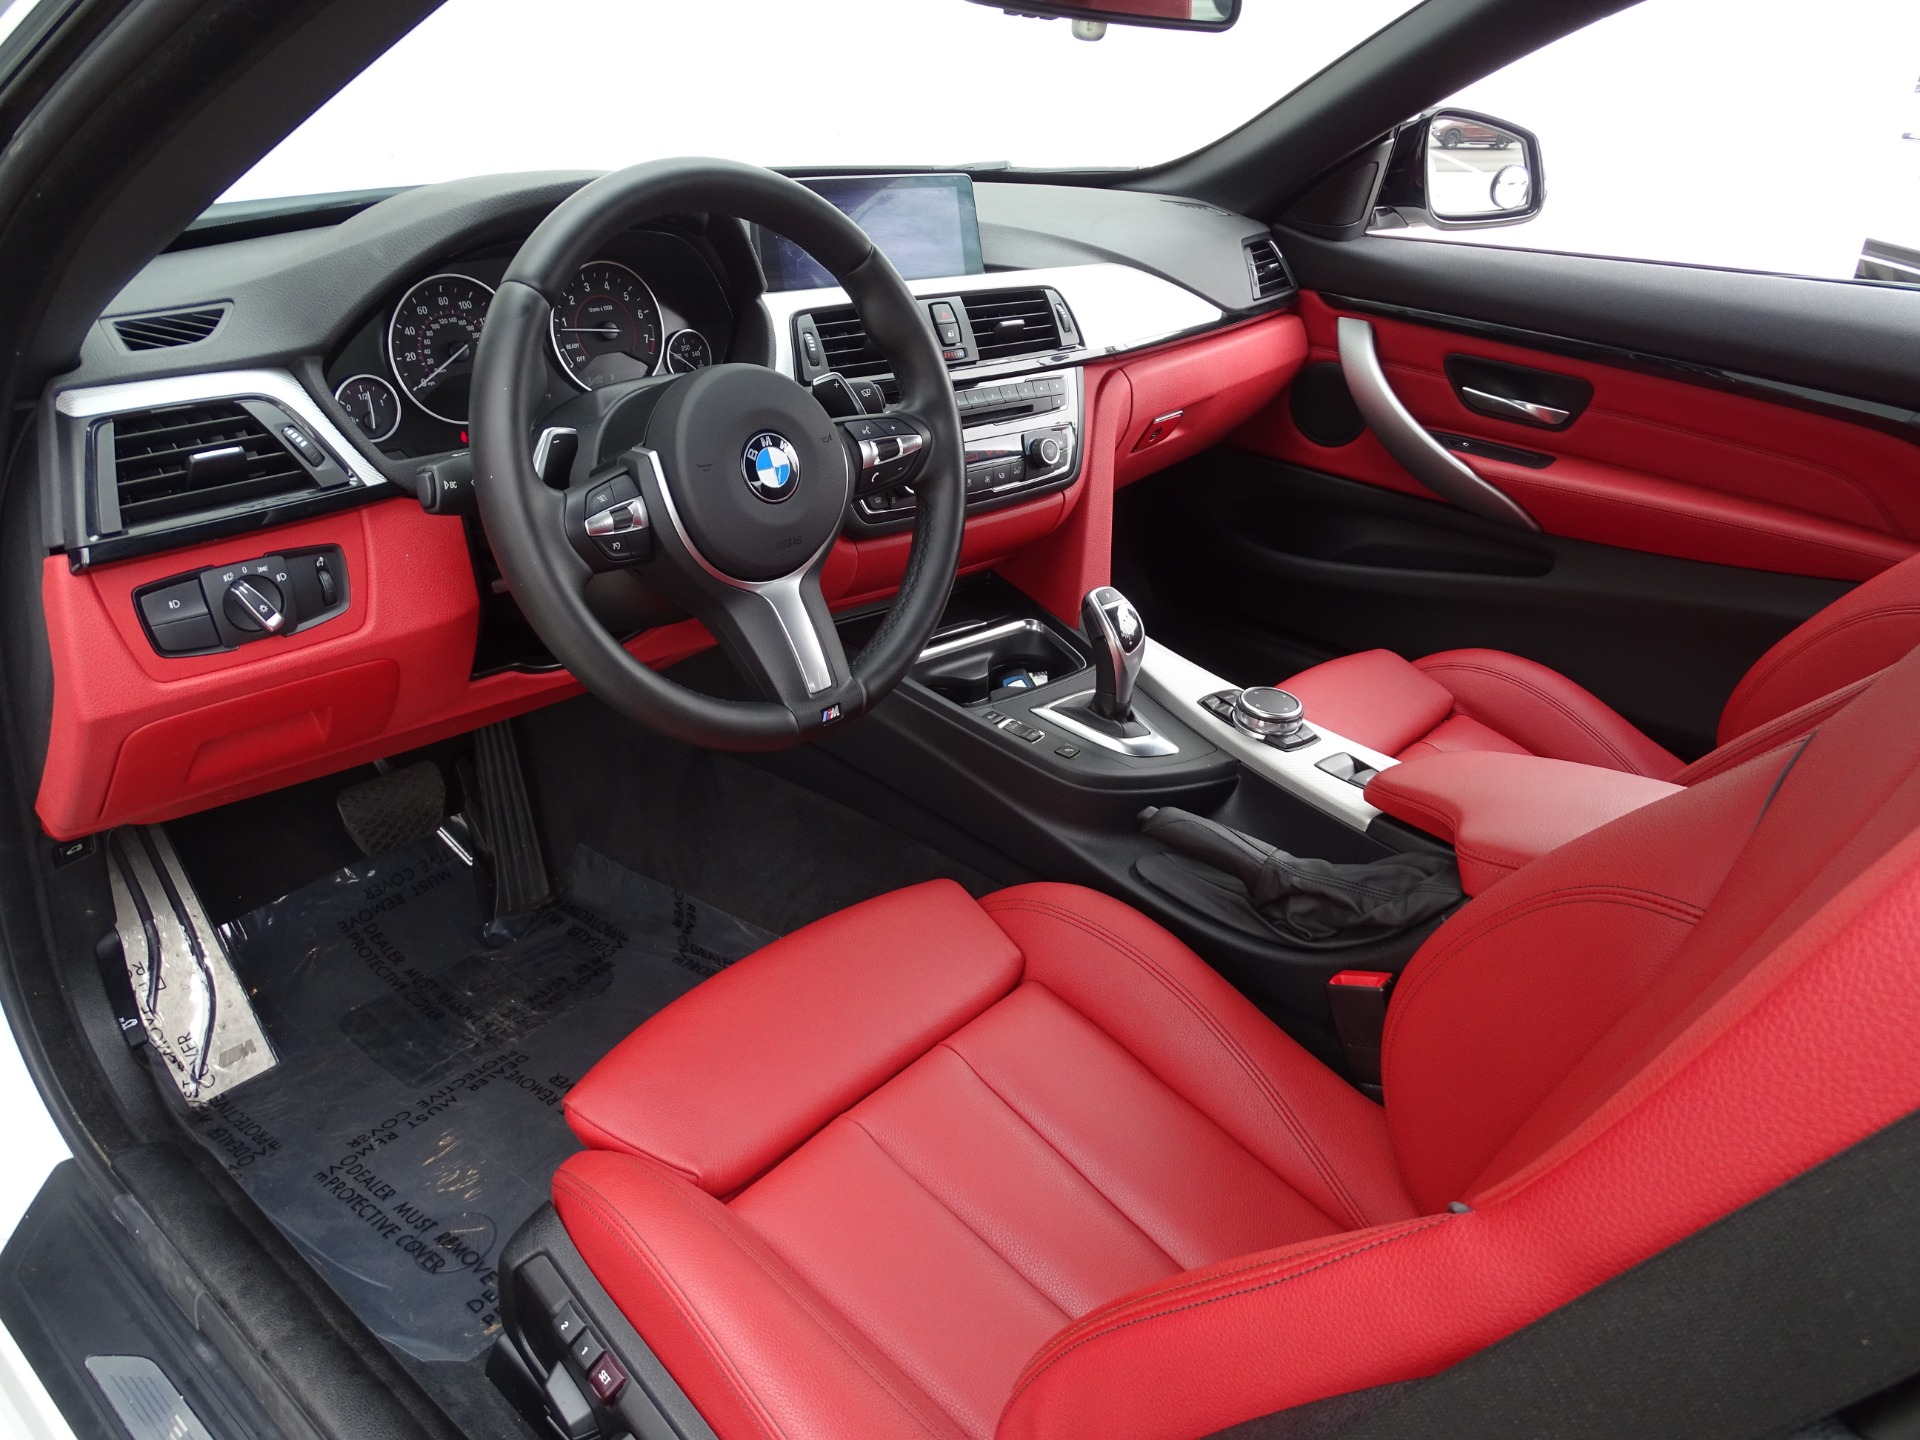 BMW 428I Convertible >> 2015 BMW 4 Series 428i *** M SPORT PACKAGE *** Stock # 6315 for sale near Redondo Beach, CA | CA ...